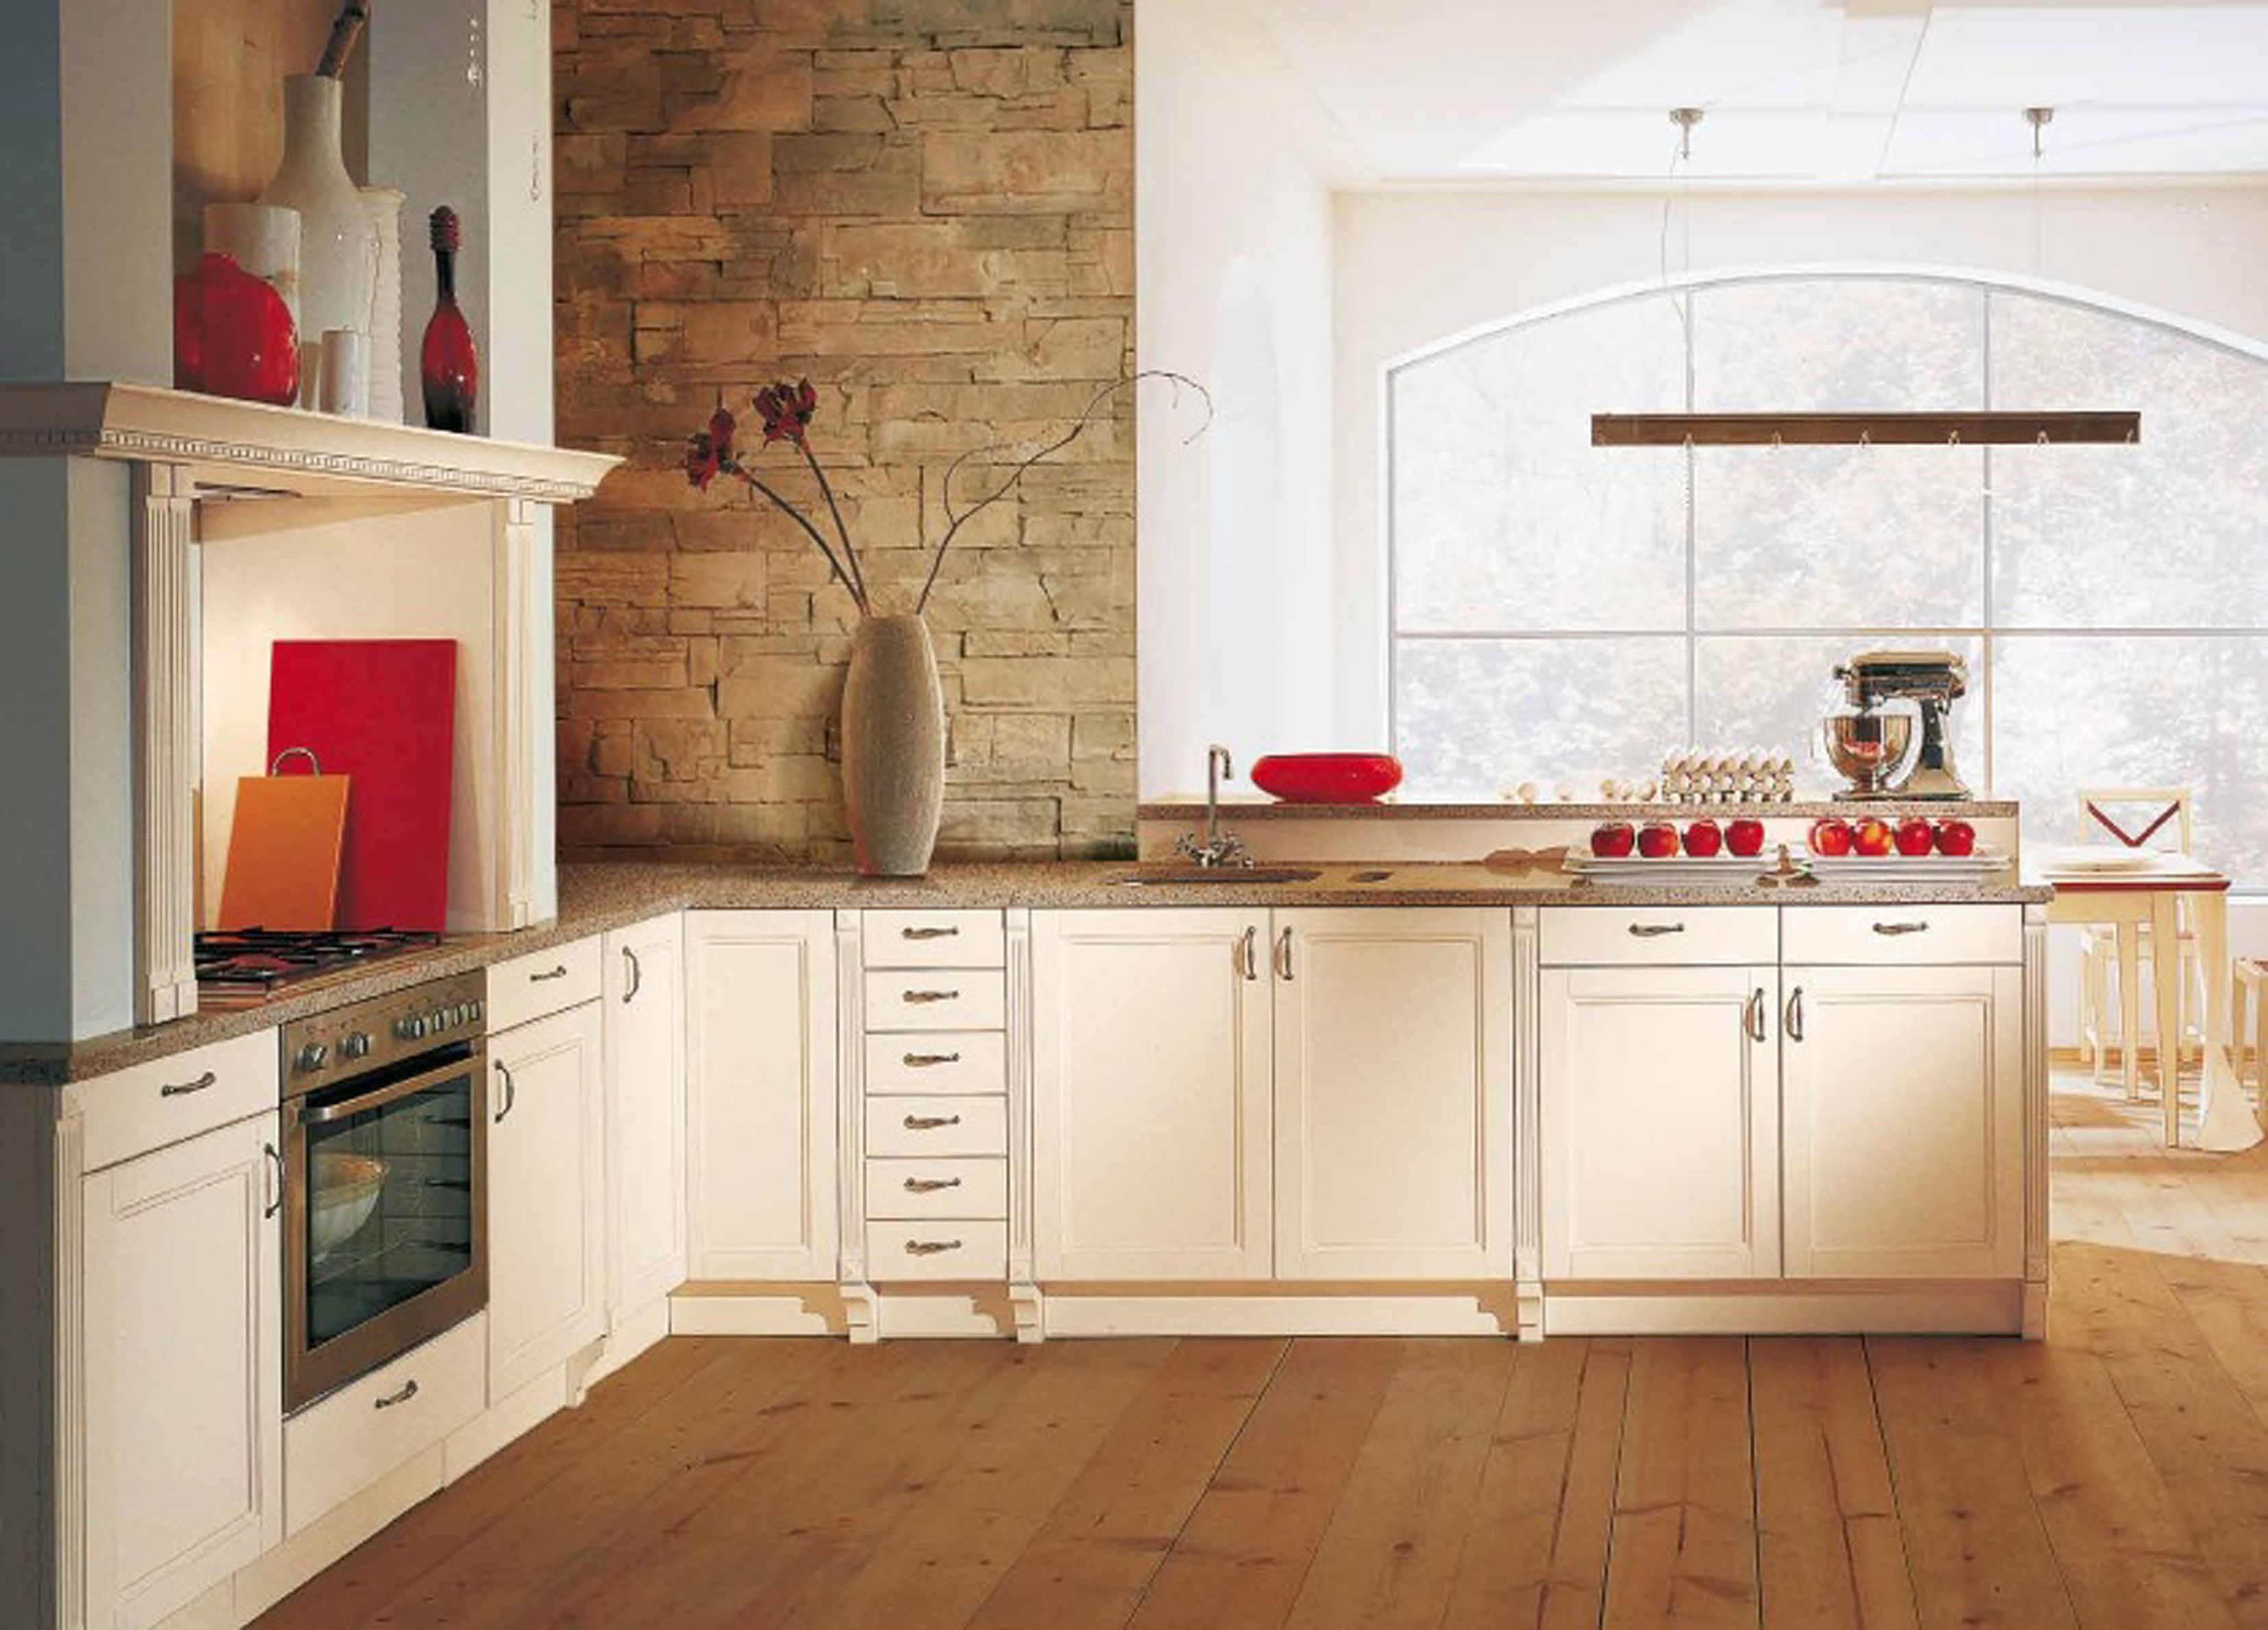 Small Kitchen Designs Ideas Ikea Kitchen Design Ideas Simple Small Pleasing Kitchen Design Simple Small Decorating Design